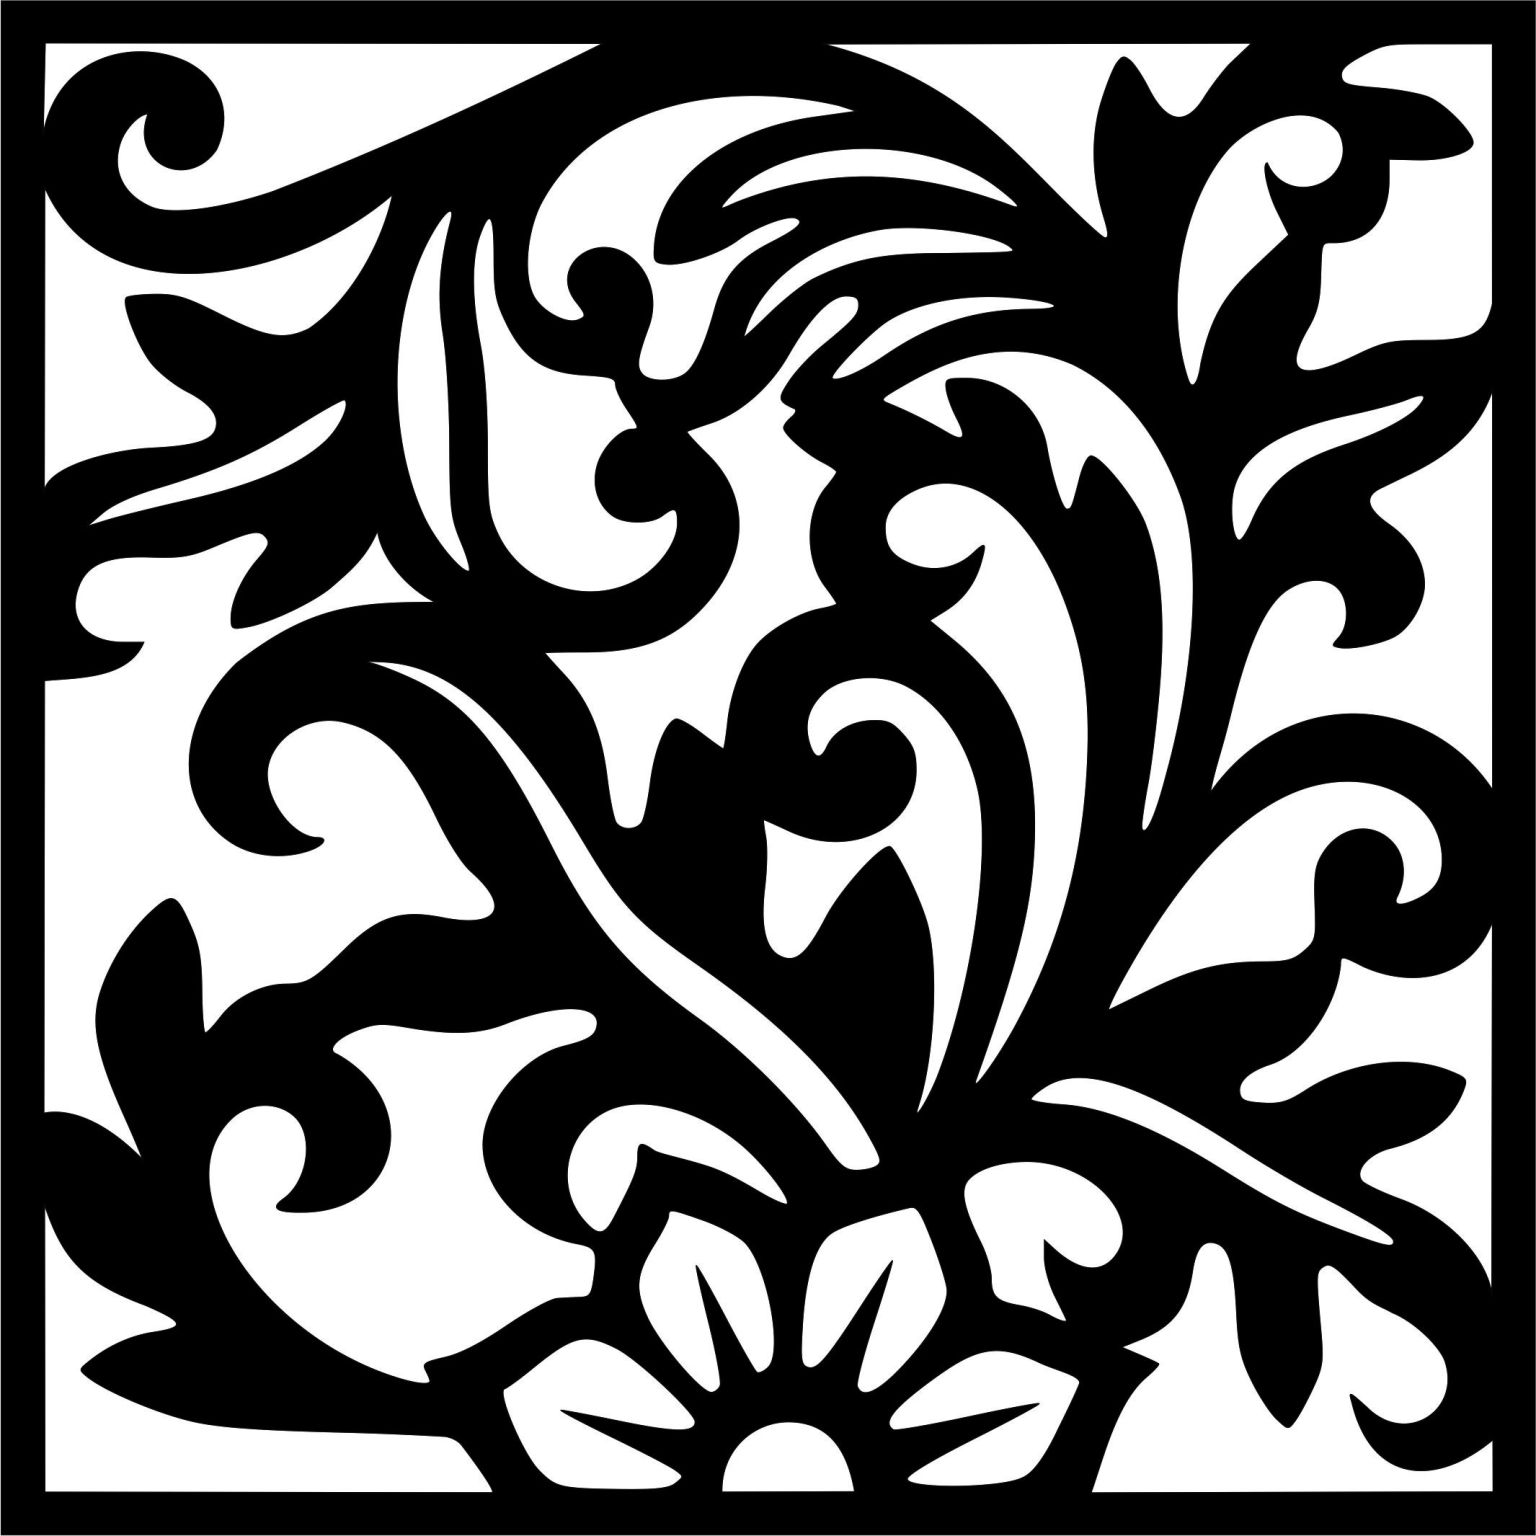 Decorative Screen Patterns For Laser Cutting 12 Free DXF File